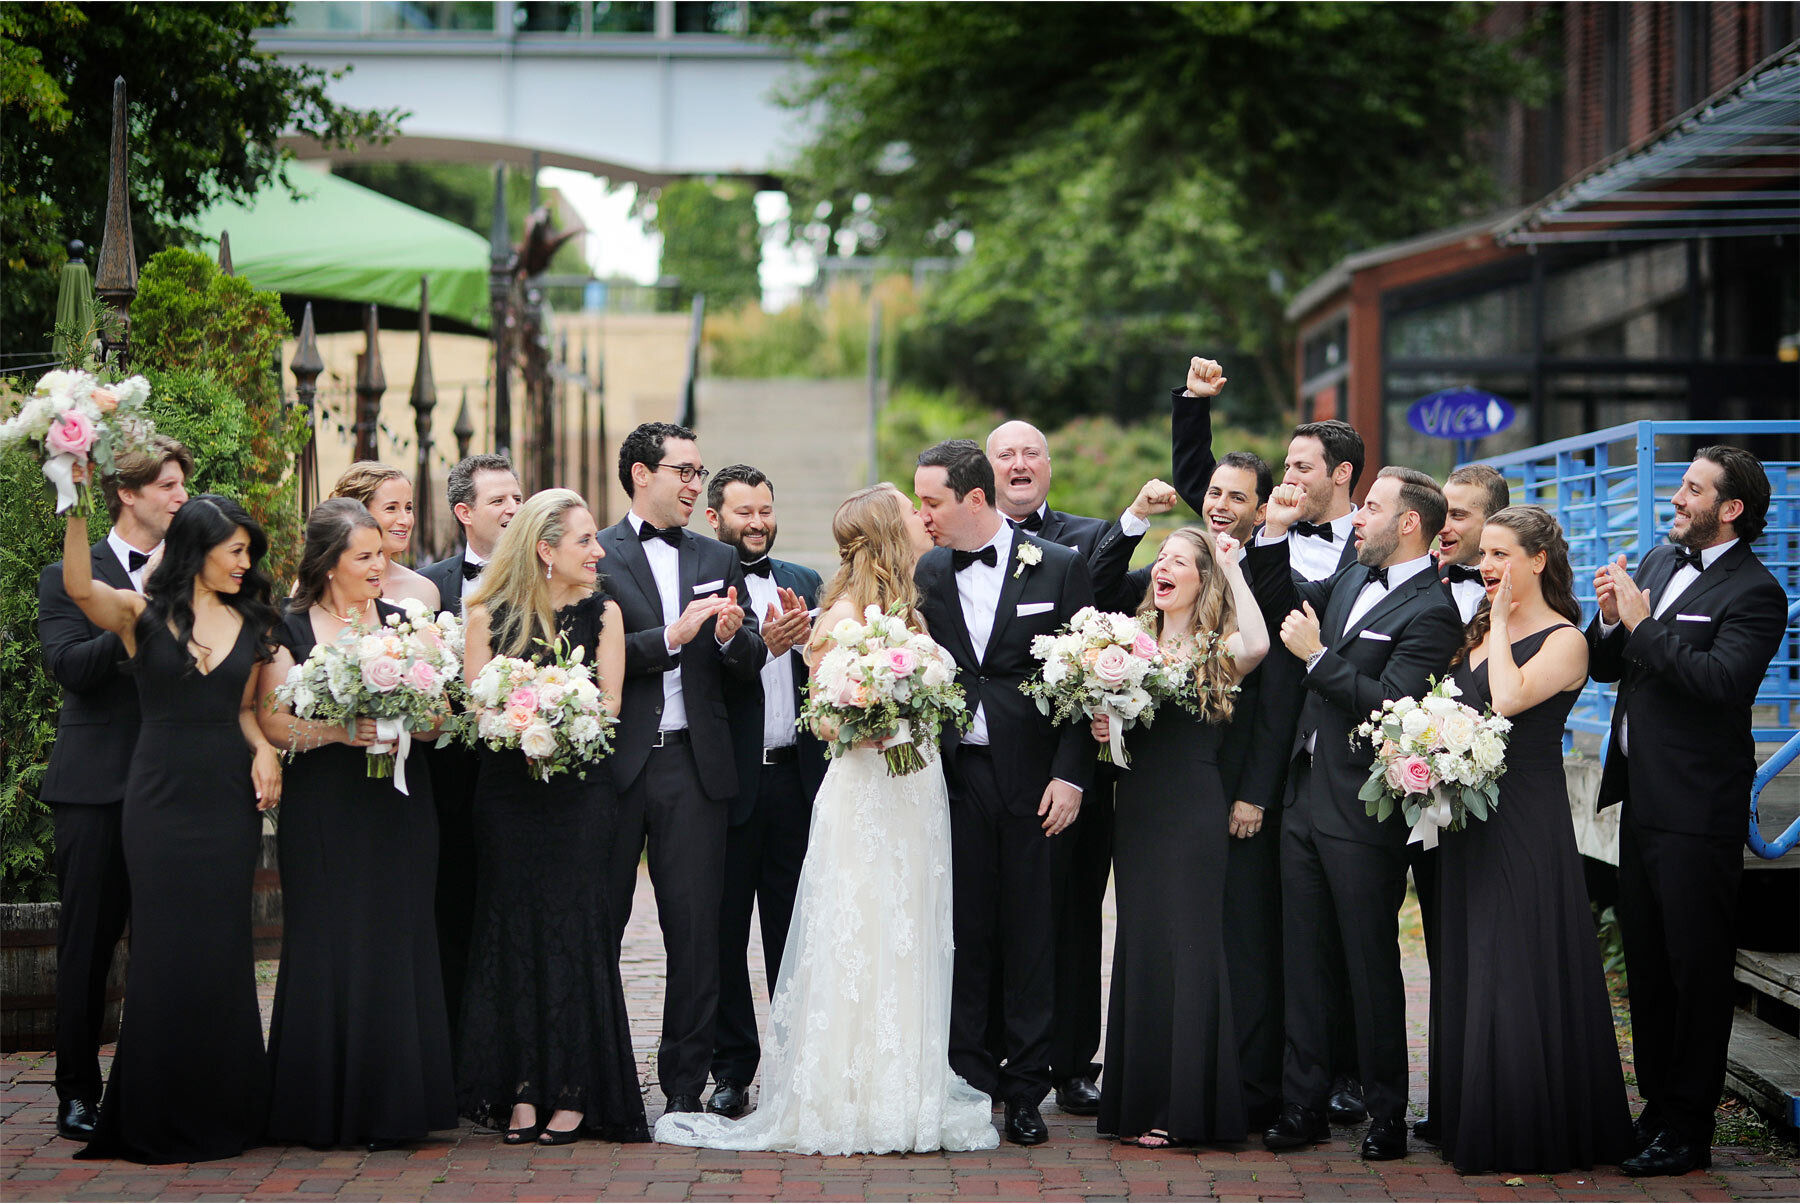 09-Minnesota-Wedding-Vick-Photography-Minneapolis-Event-Centers-Bride-Groom-Bridesmaids-Groomsmen-Courtyard-Amy-and-Avi.jpg